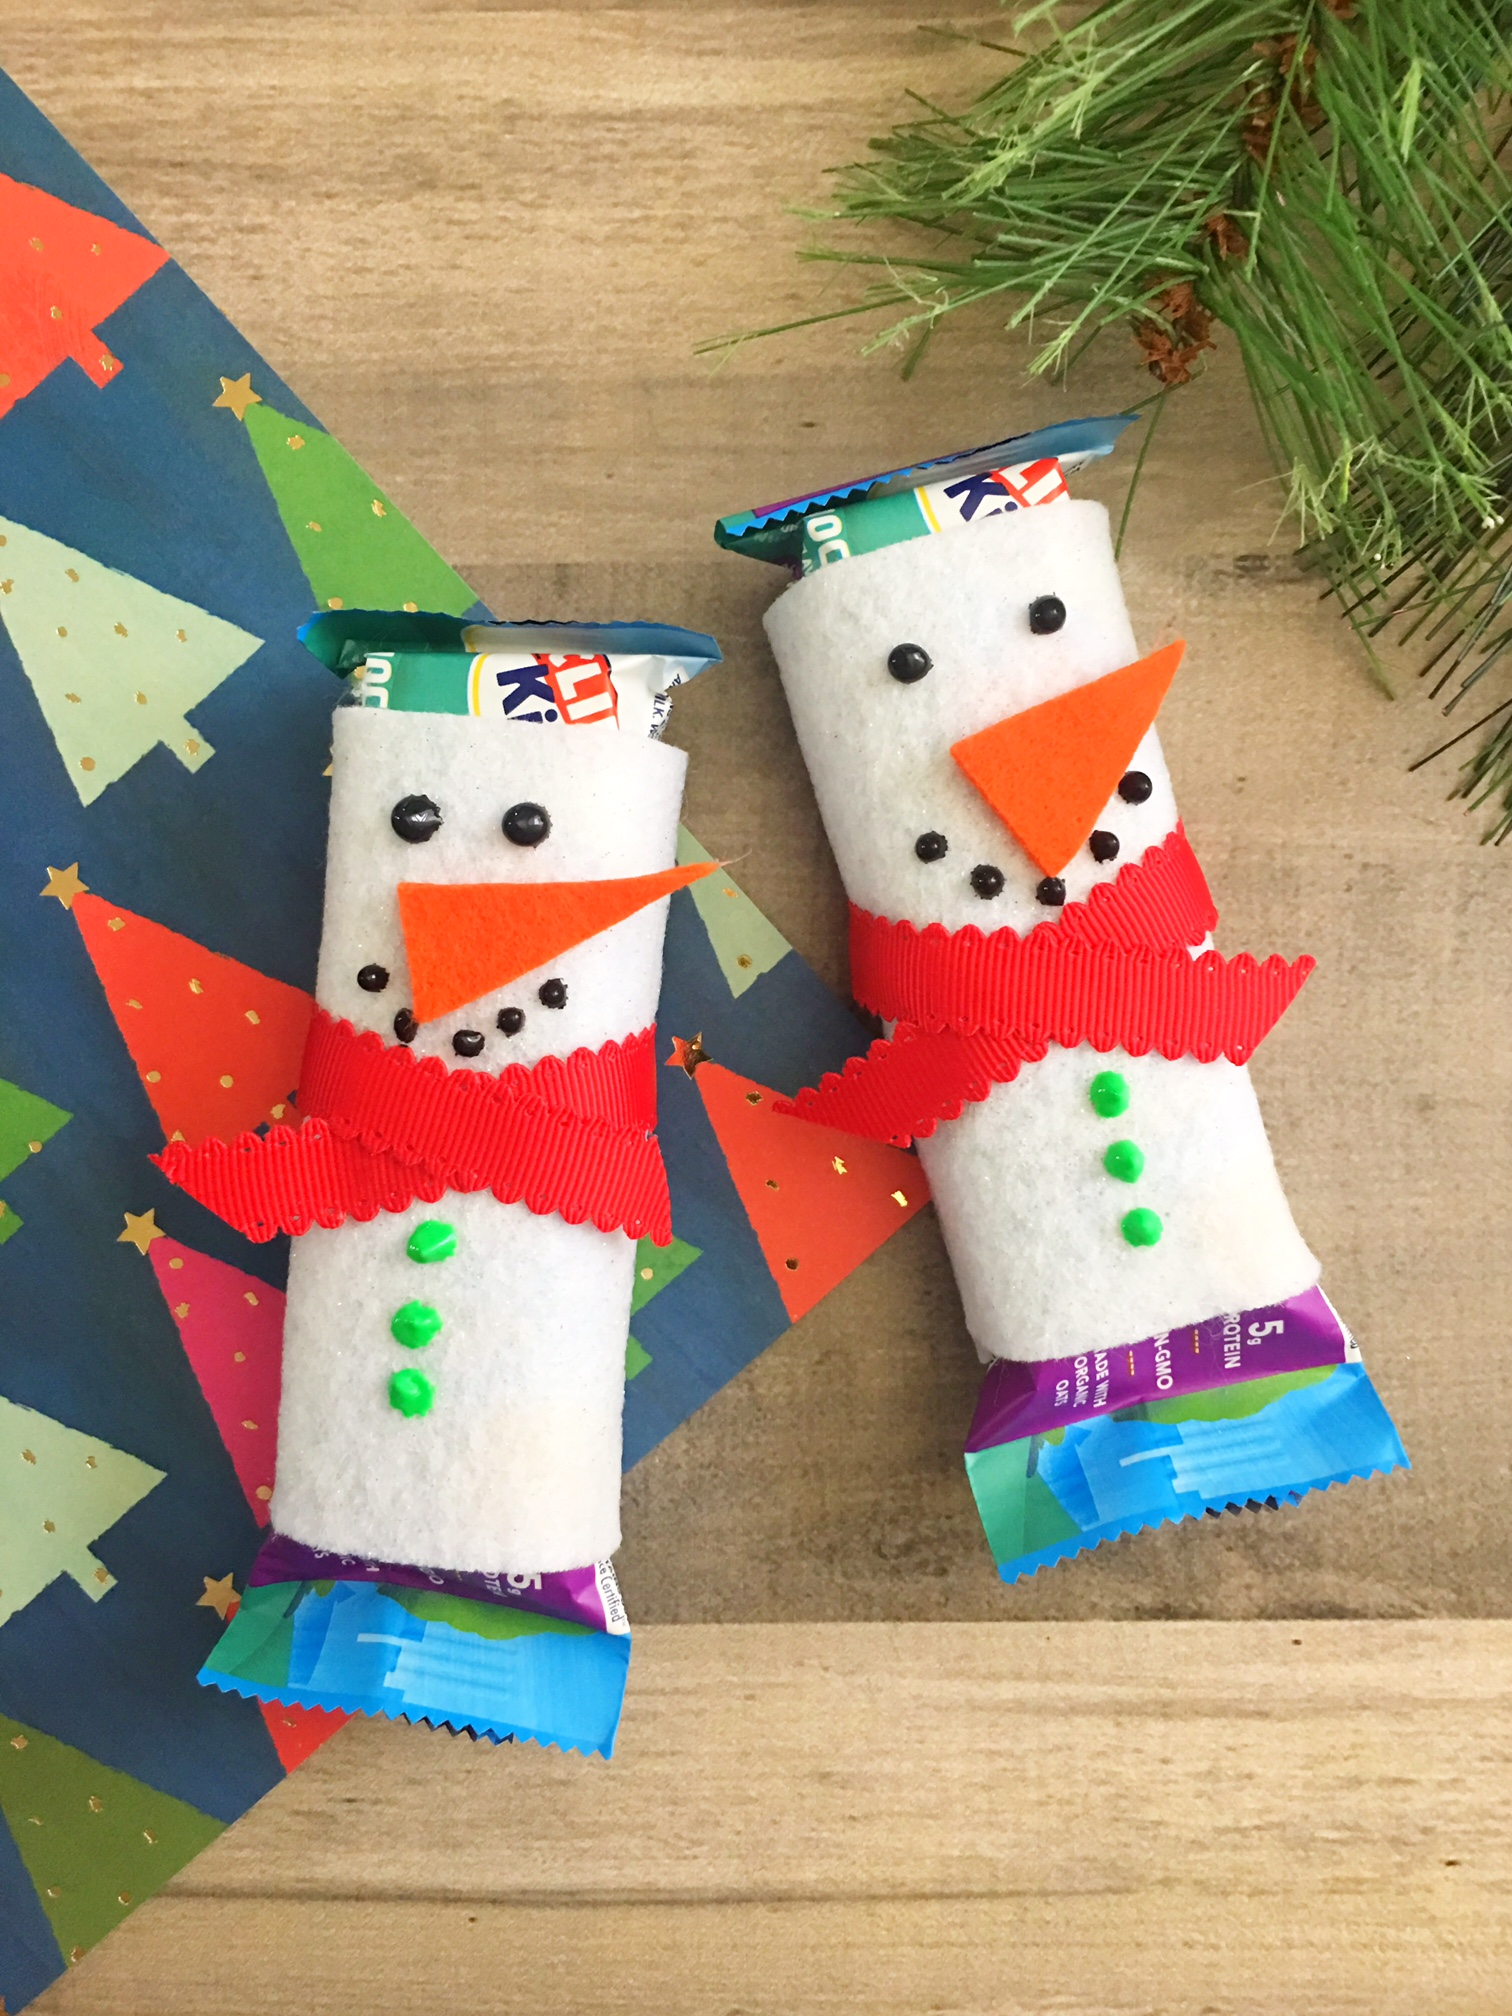 Looking for a cute way to give a stocking stuffer type present or a school treat? These Snowman Granola Bar covers are so simple to make.